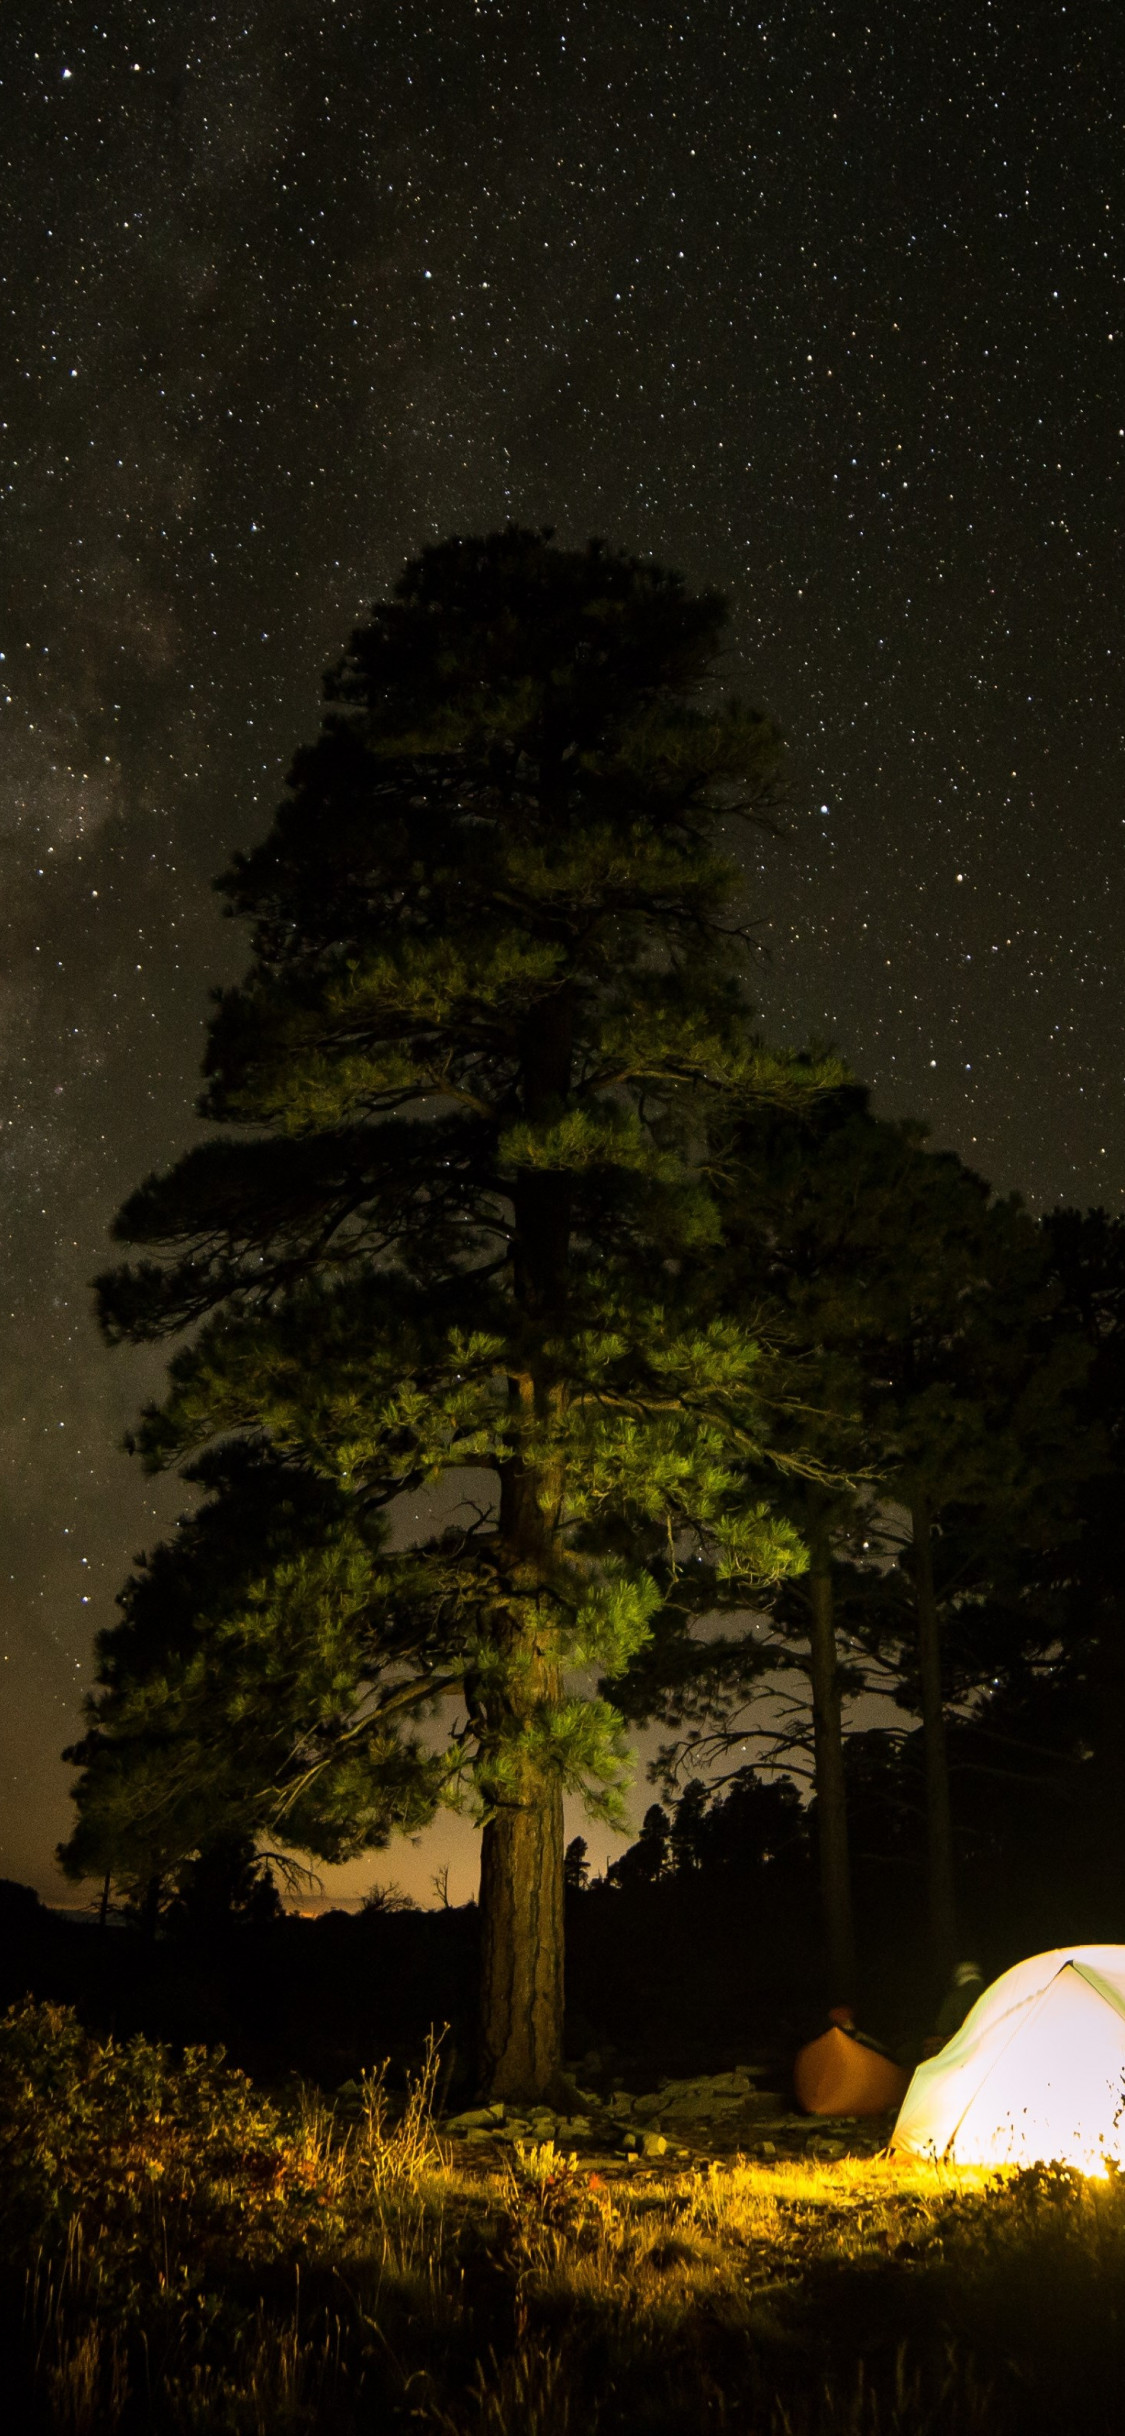 With tent under the night sky wallpaper 1125x2436